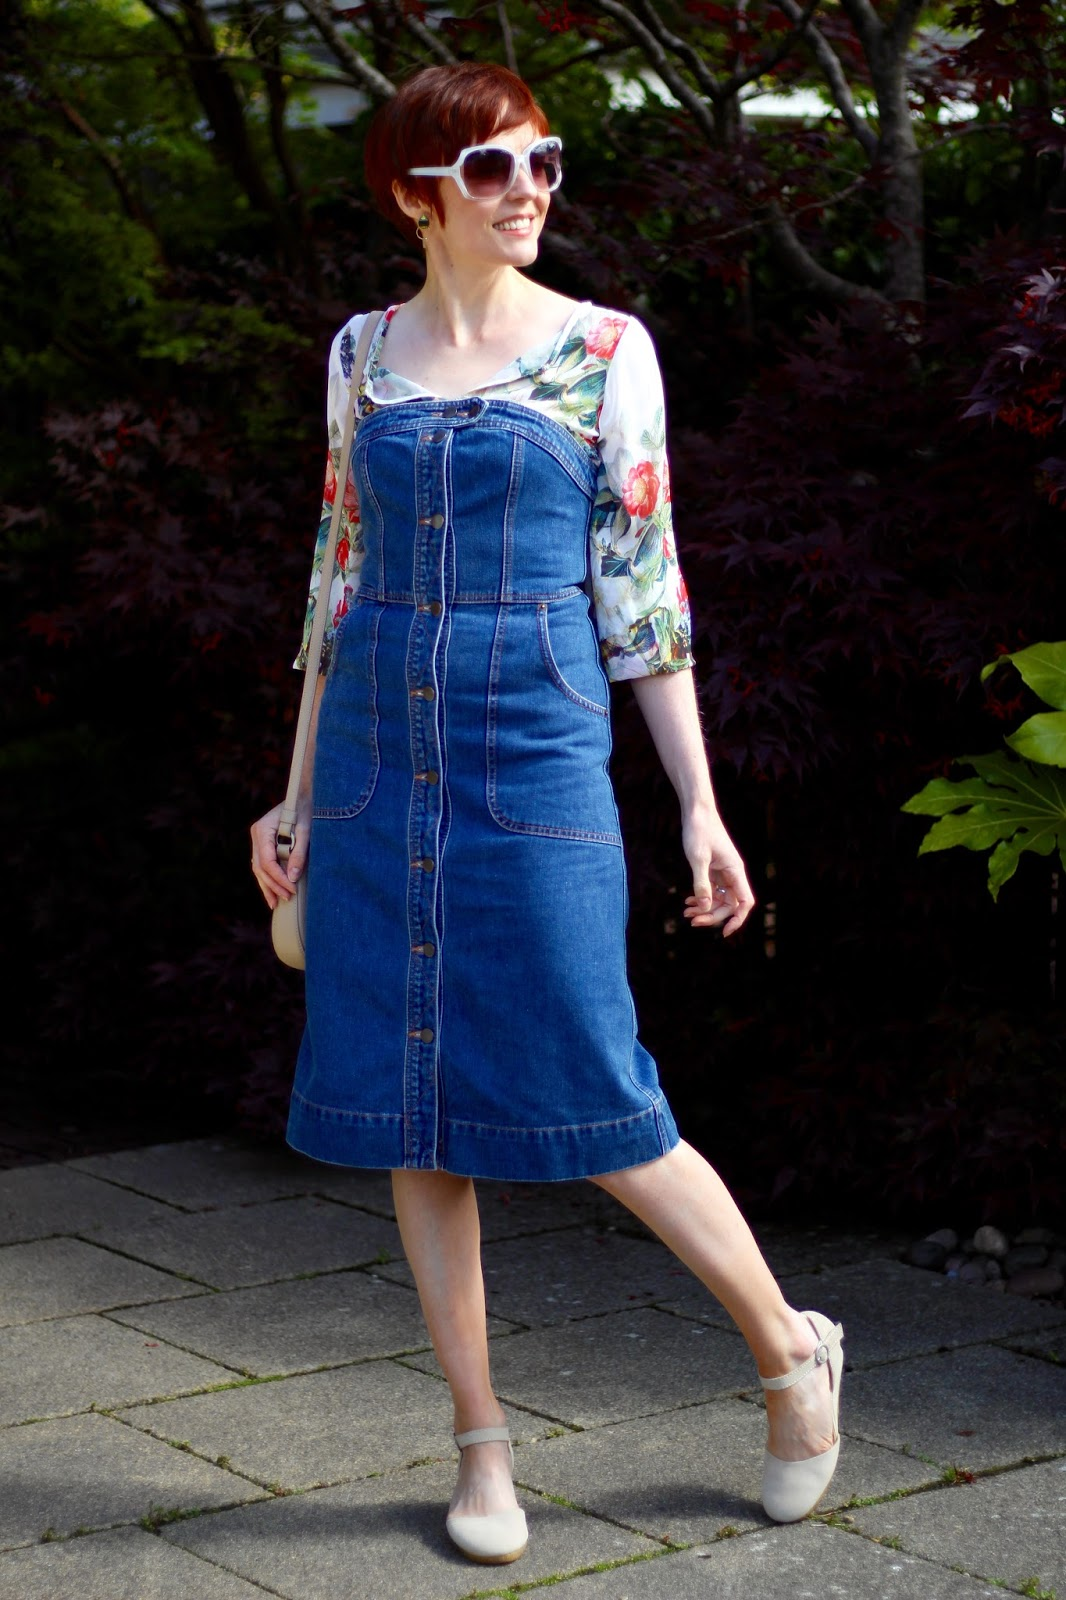 Whistles Denim Bustier Dress, Chiffon Floral Blouse, Clarks Original Wedges | Fake Fabulous